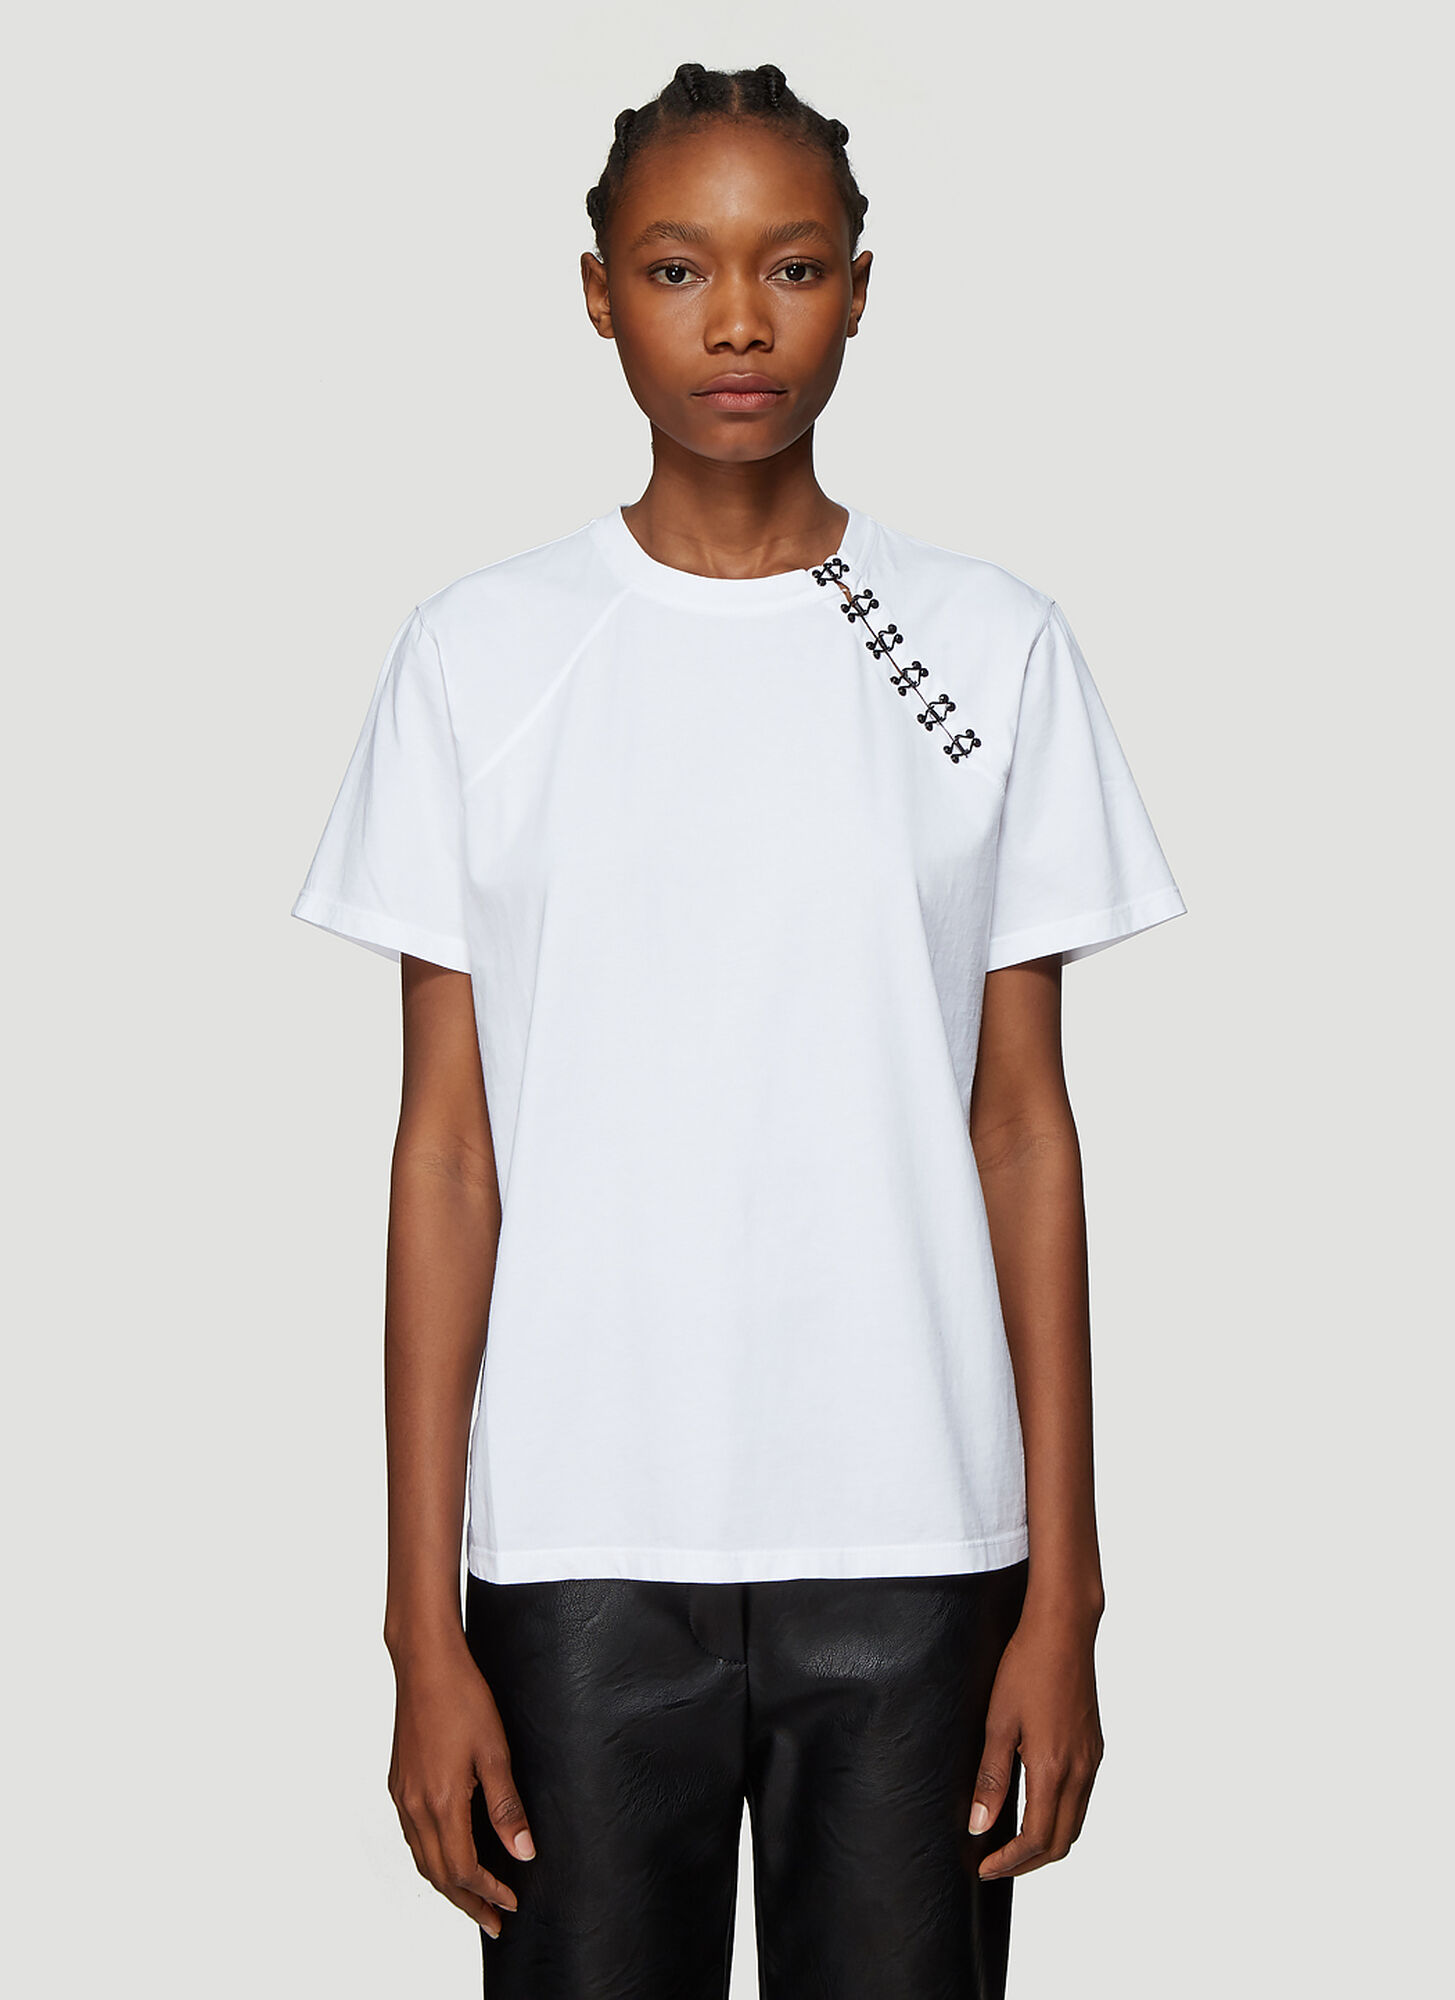 Olivier Theyskens Hook-And-Eye T-Shirt in White